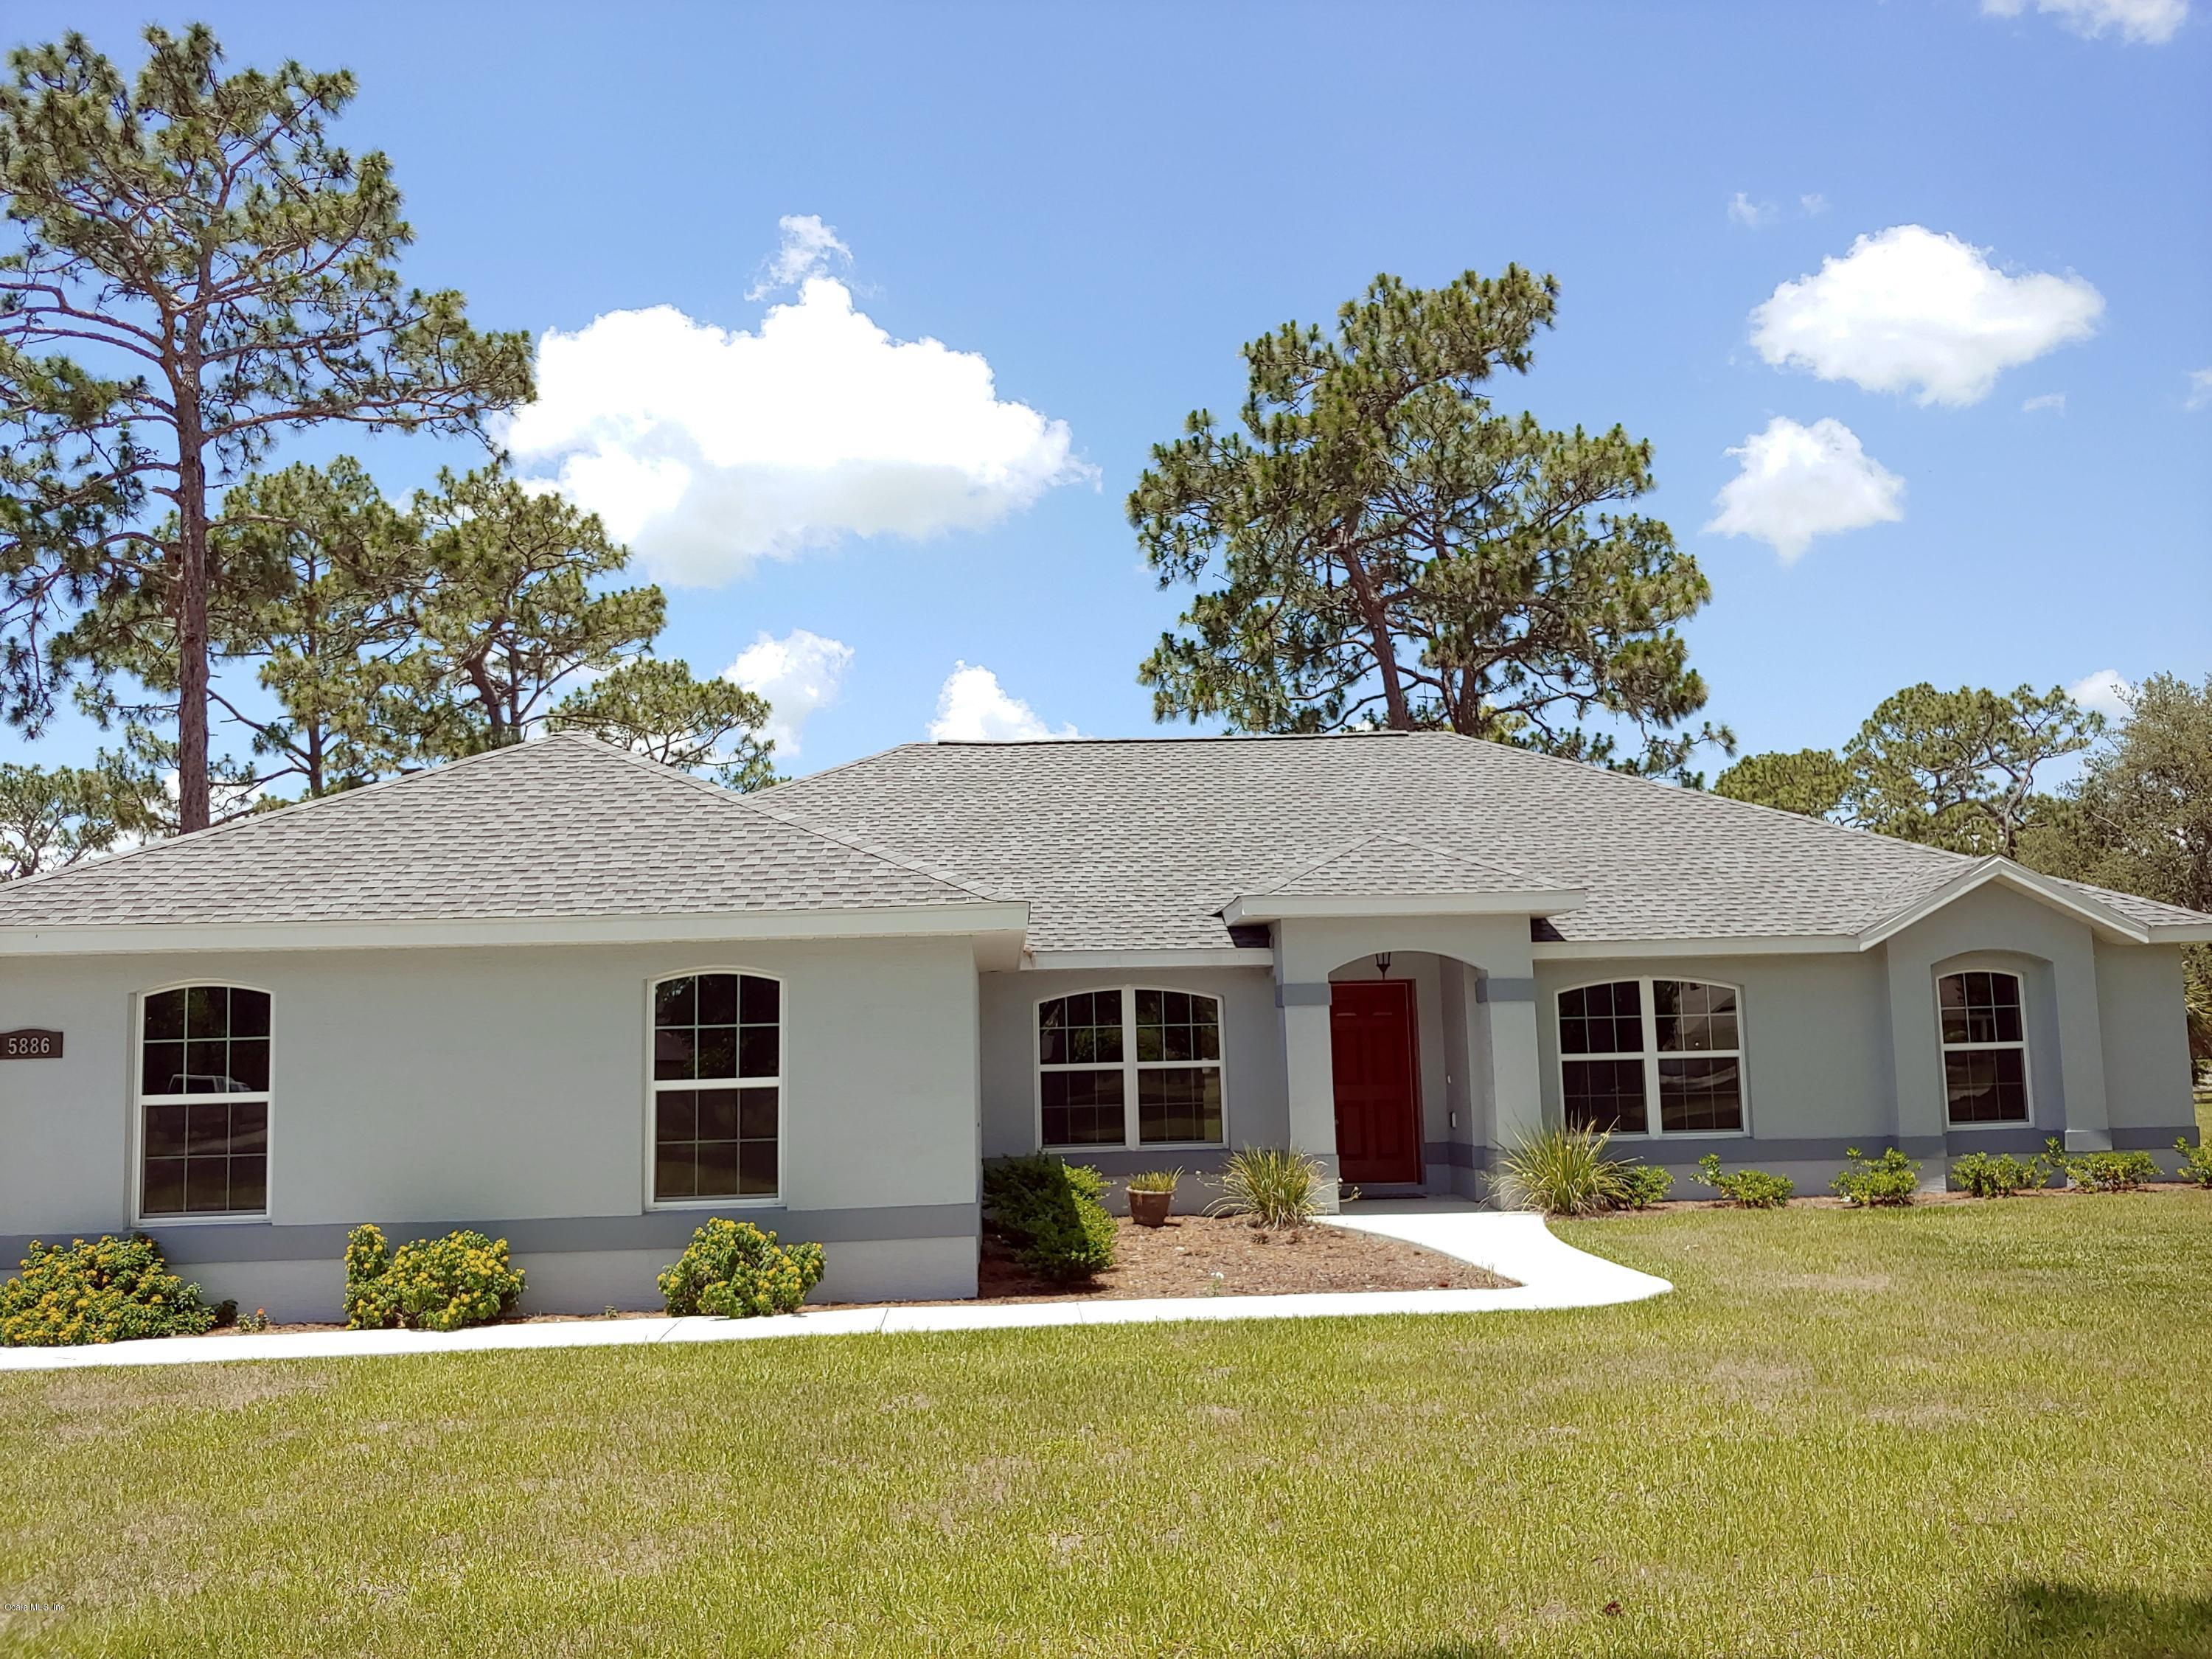 Swell 5886 Ne 61 Ave Road Silver Springs Fl Mls 559593 Beutiful Home Inspiration Ommitmahrainfo